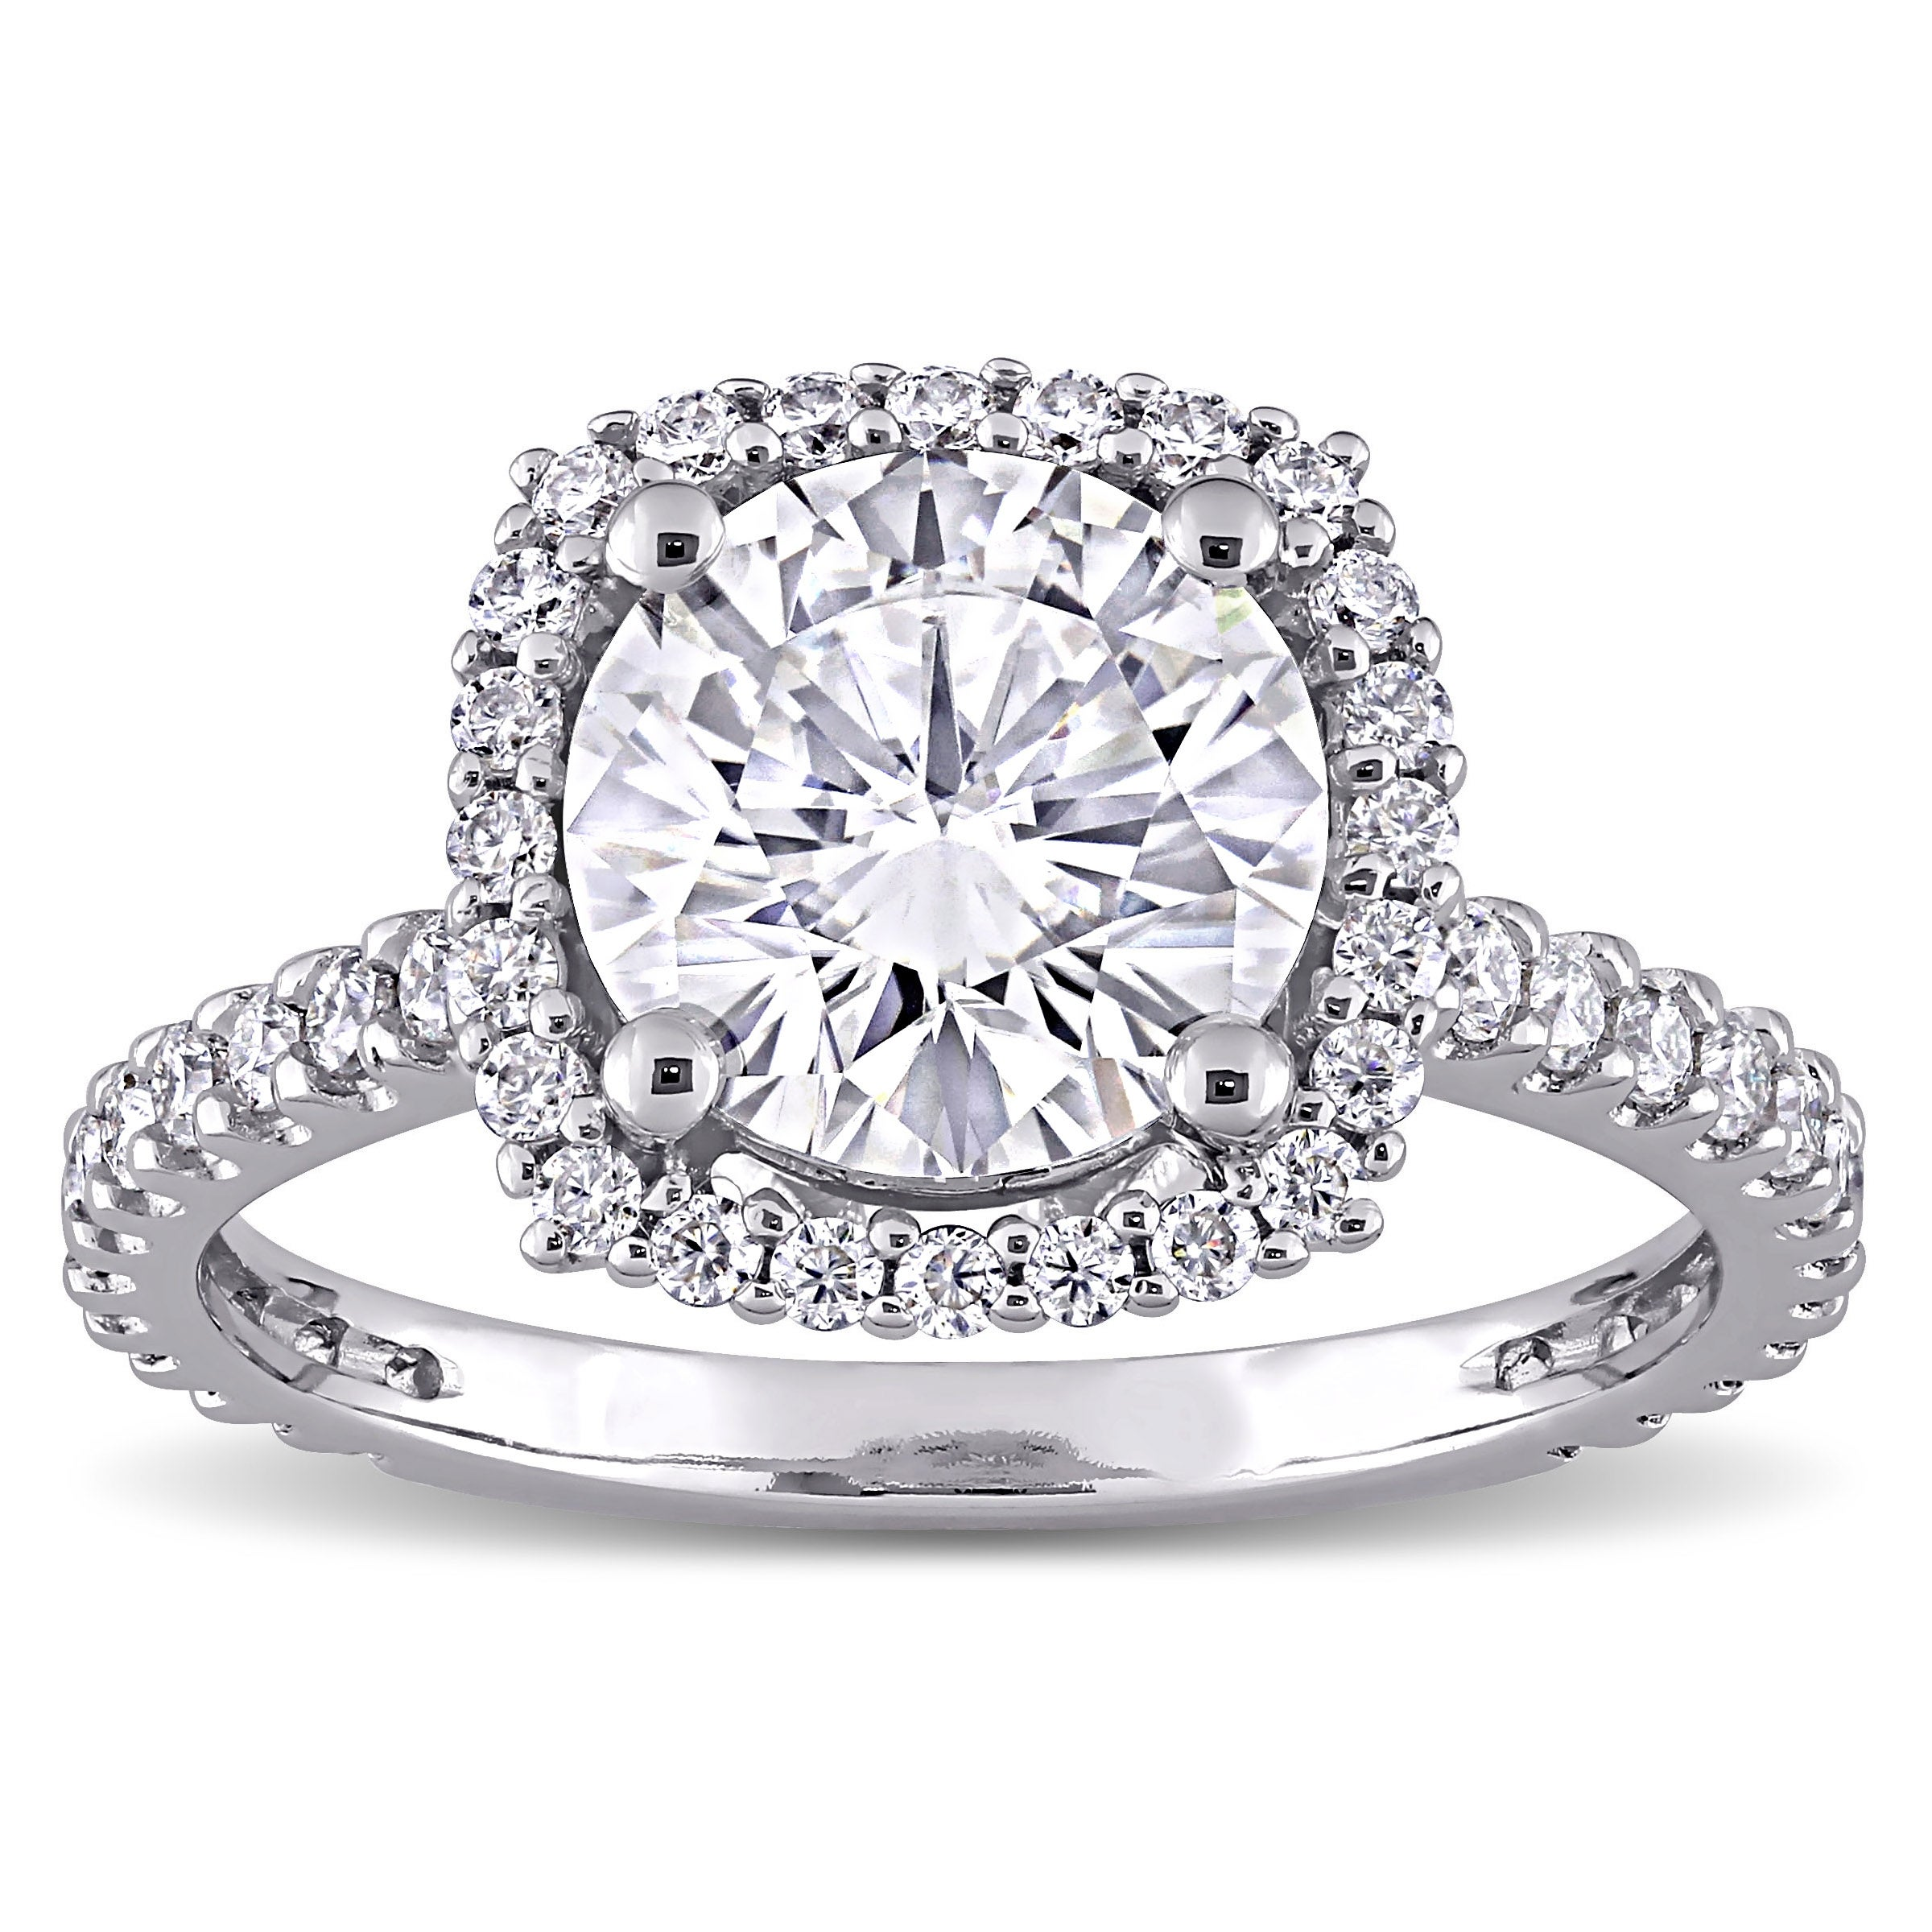 Details about  /Flower 5mm Round Cut Sparkle Moissanite Halo Engagement Ring 10k White Gold Gift